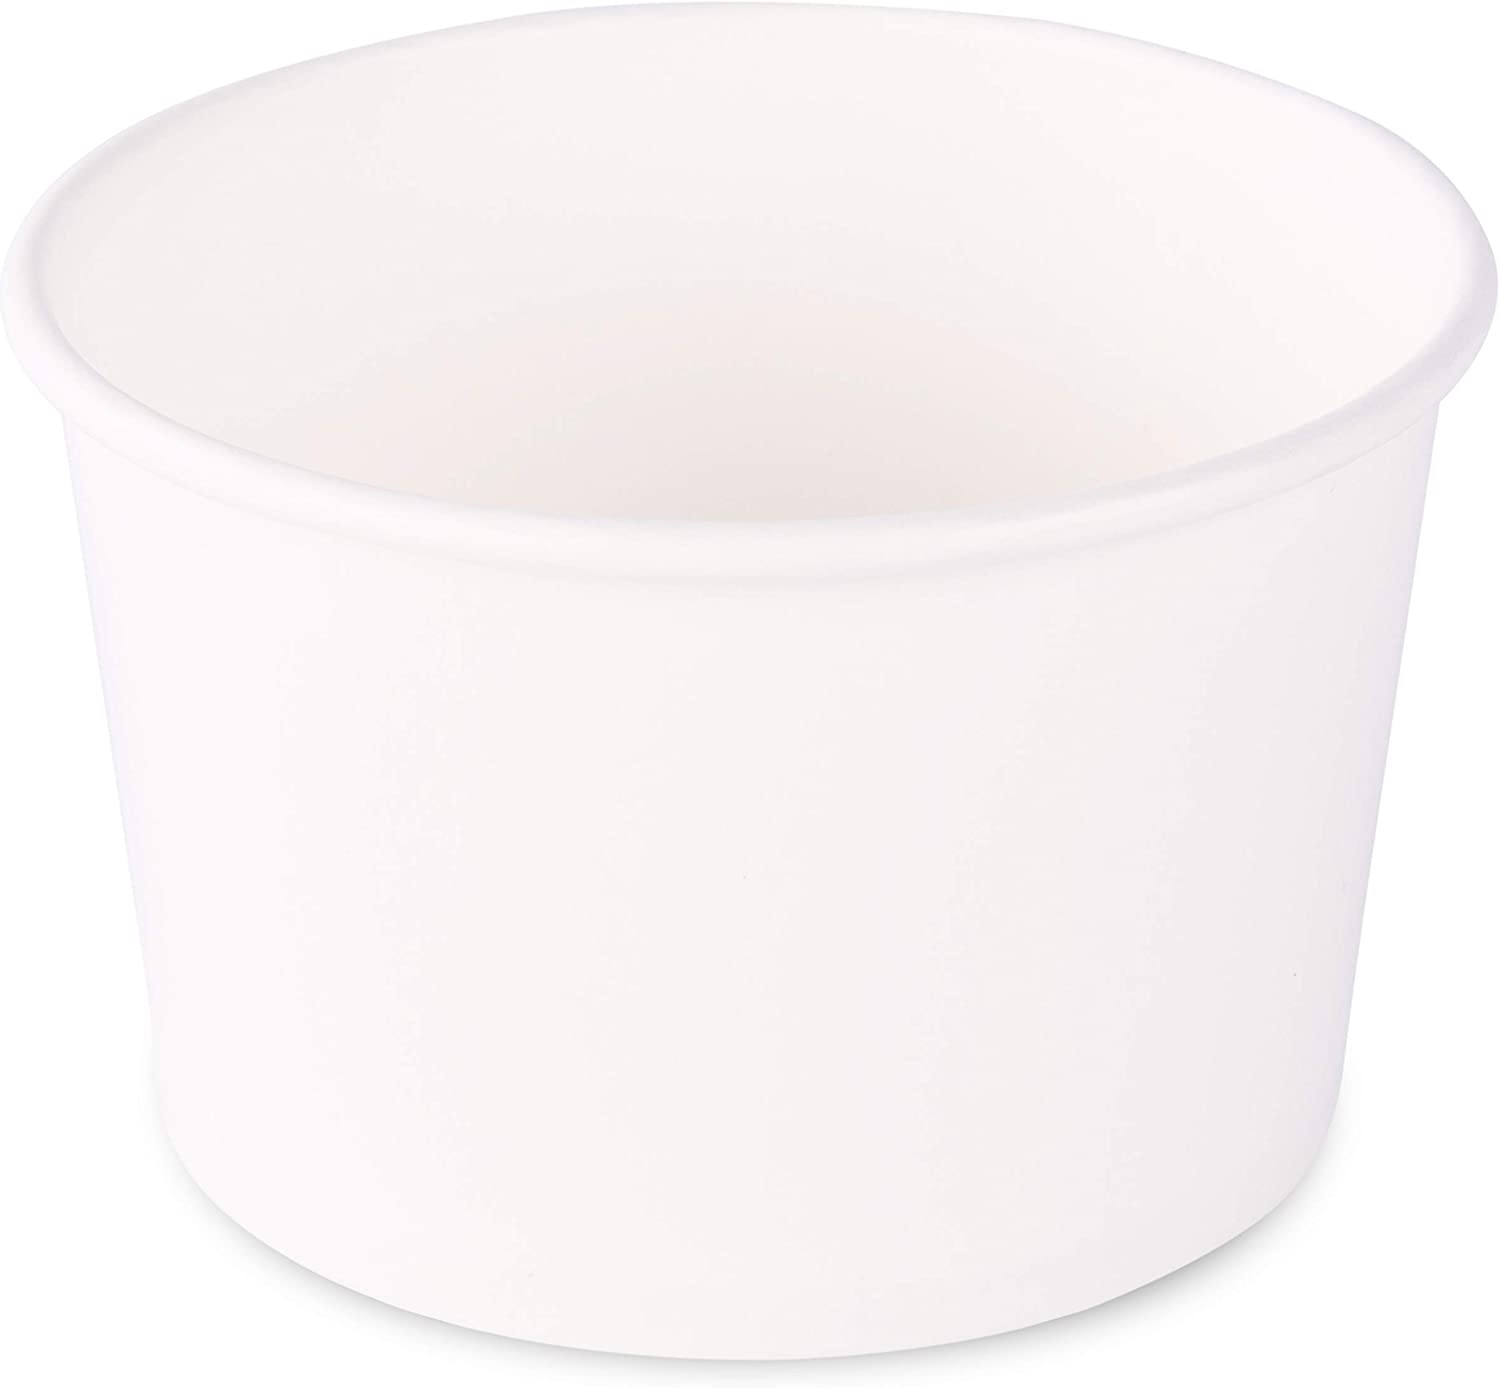 Paper Ice Cream Cups - 100-Count - 8 oz Disposable Dessert Bowls for Hot or Cold Food, 8-Ounce Party Supplies Treat Cups for Sundae, Frozen Yogurt, Soup, White